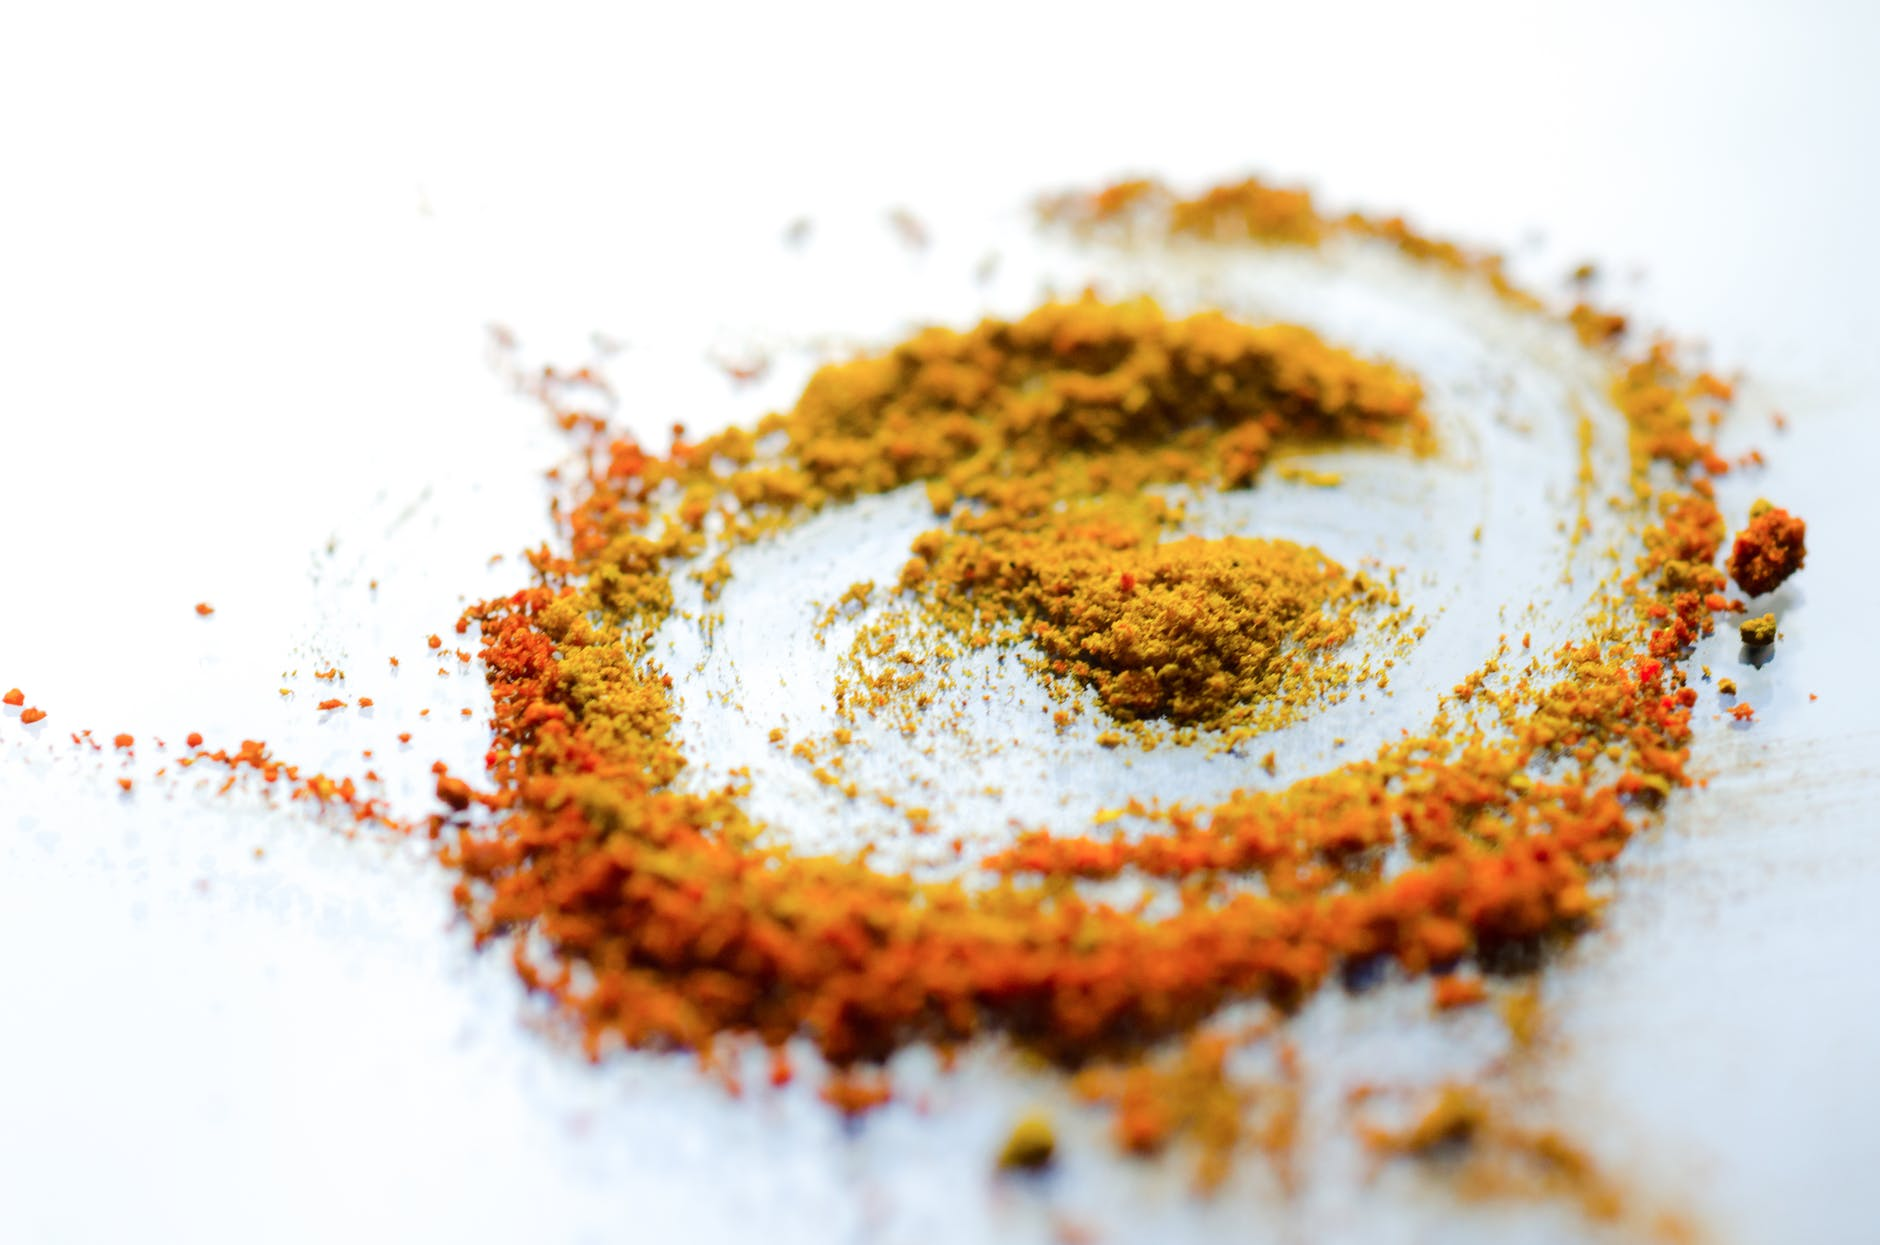 a swirl of spices